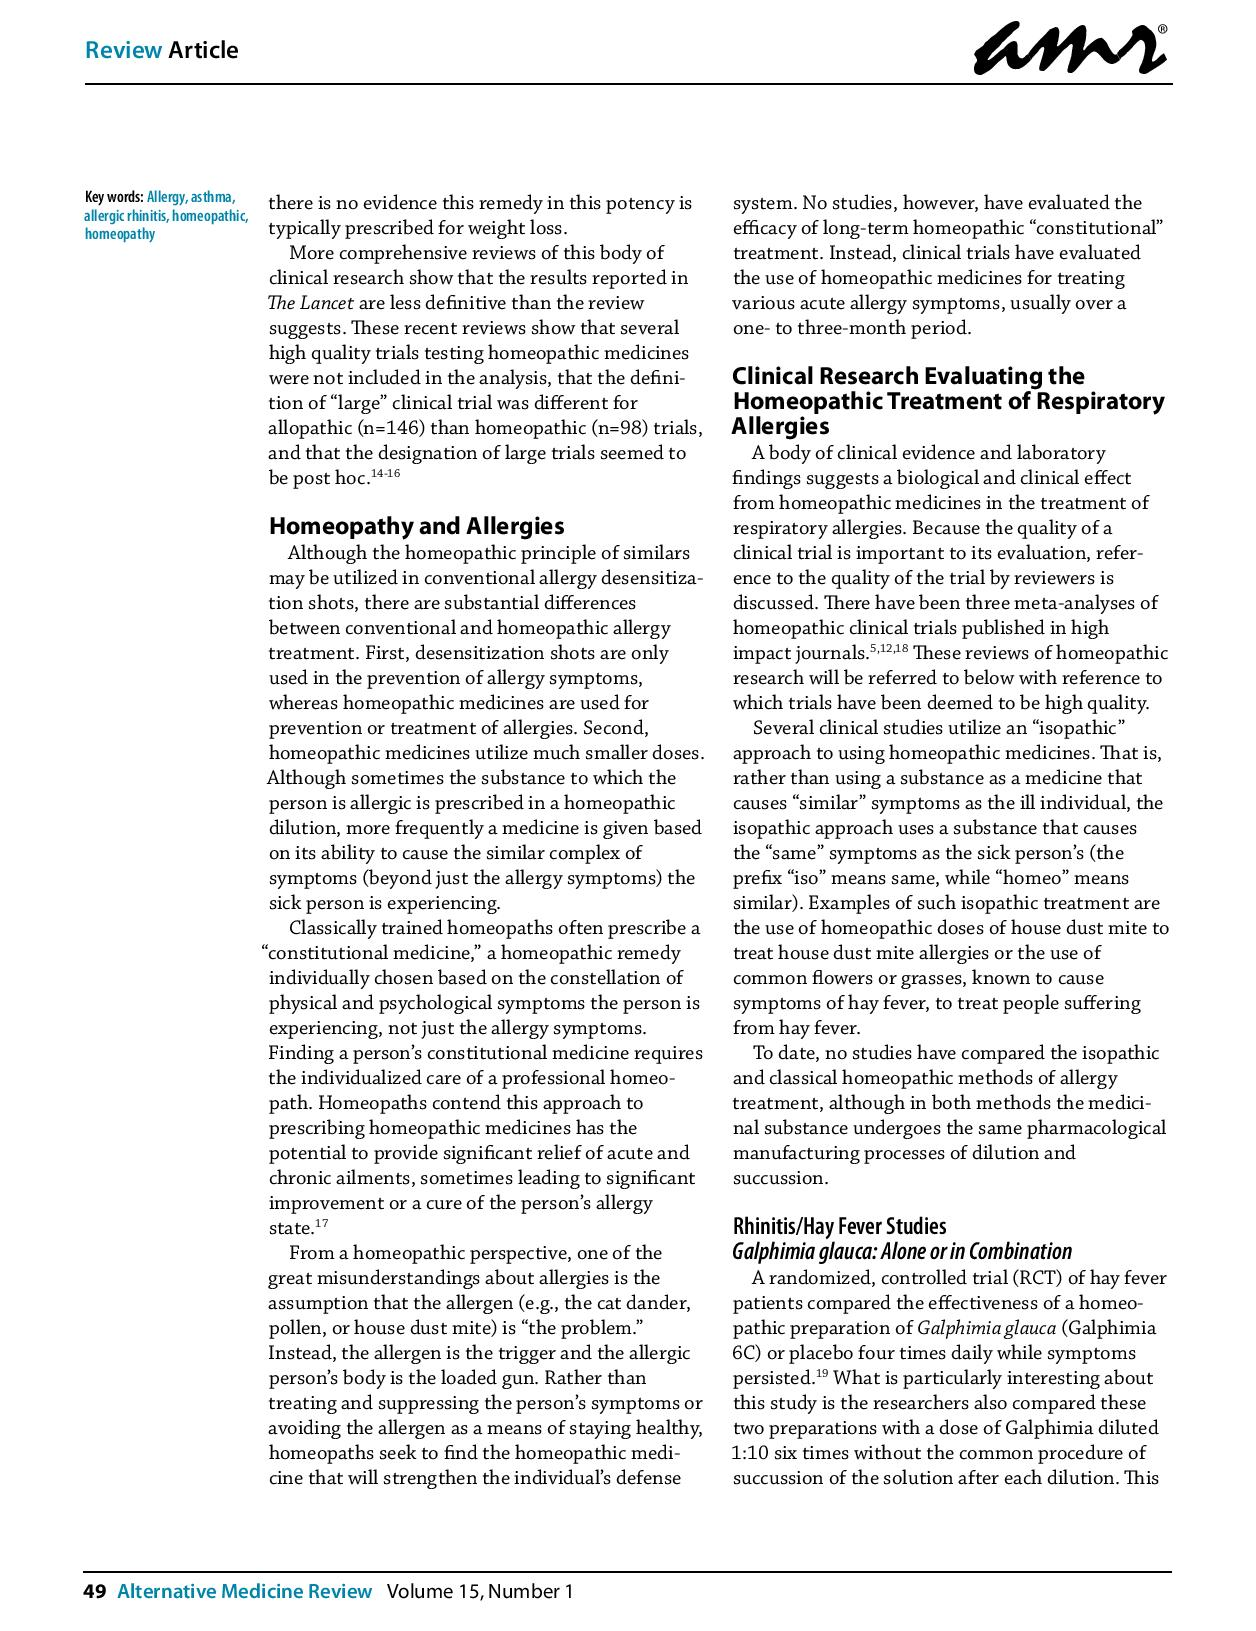 A review of homeopathic research in the treatment of respiratory allergies 2010 page 002